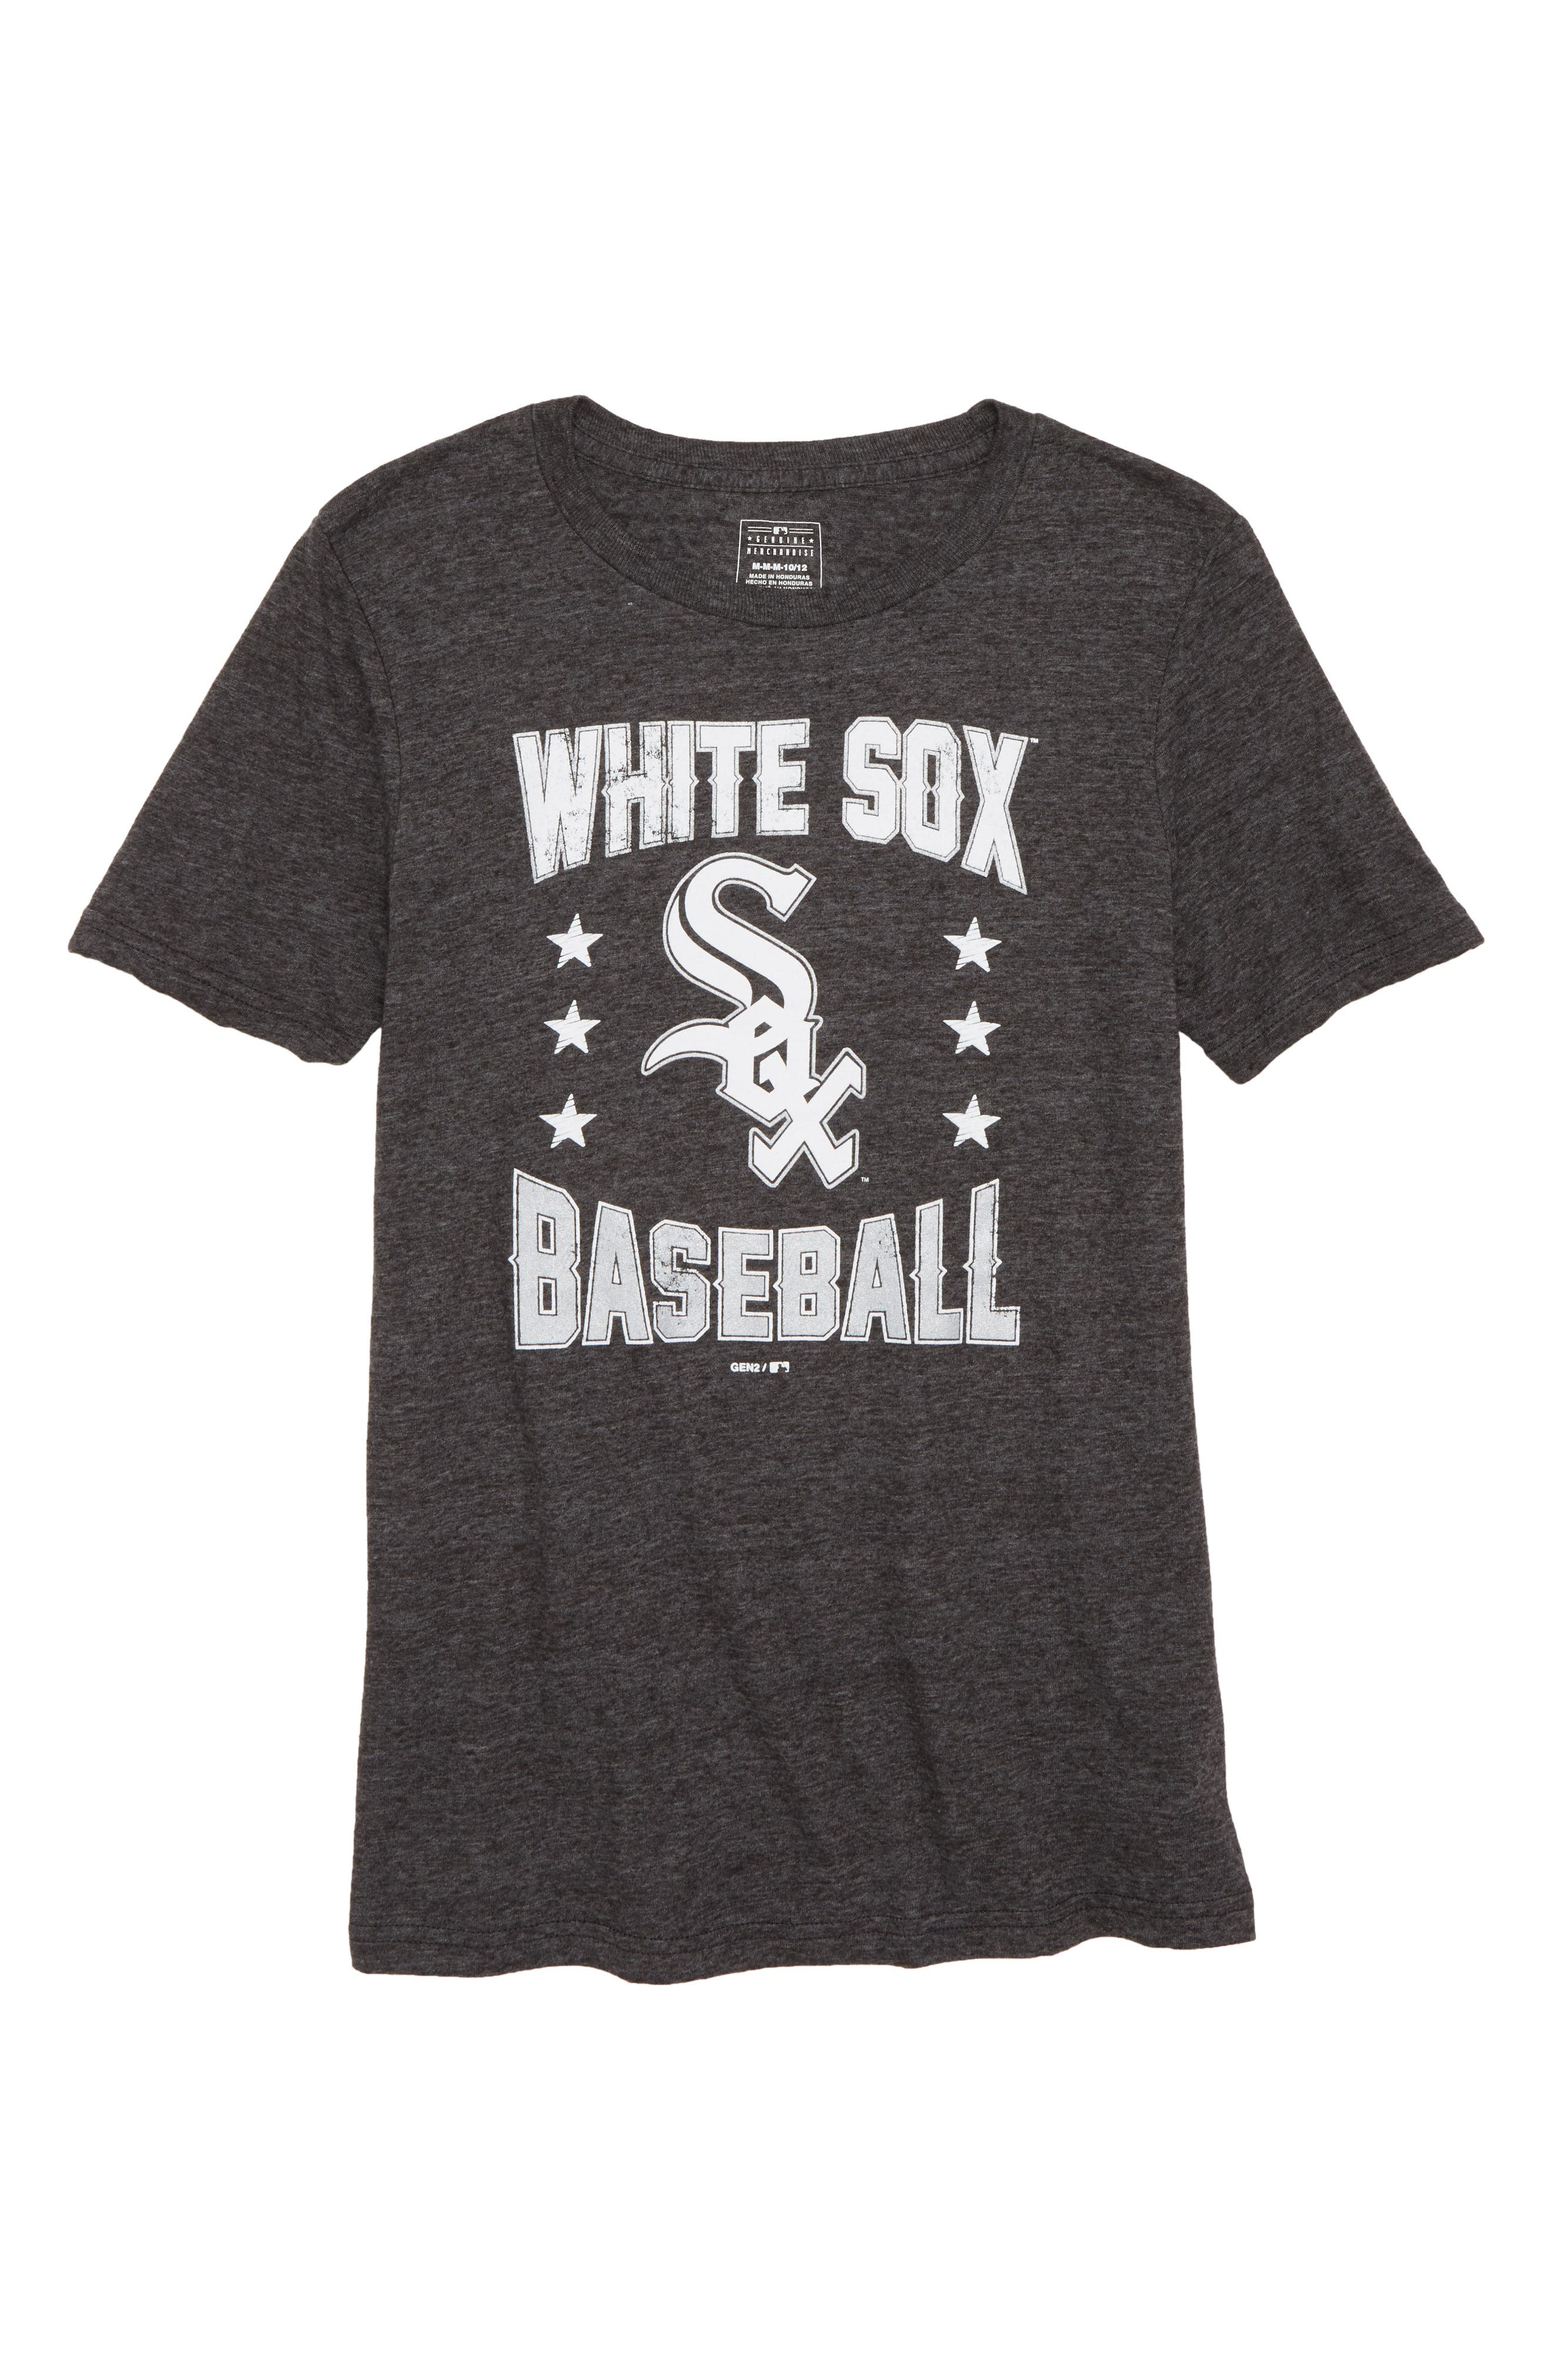 Chicago White Sox Triple Play T-Shirt,                             Main thumbnail 1, color,                             001